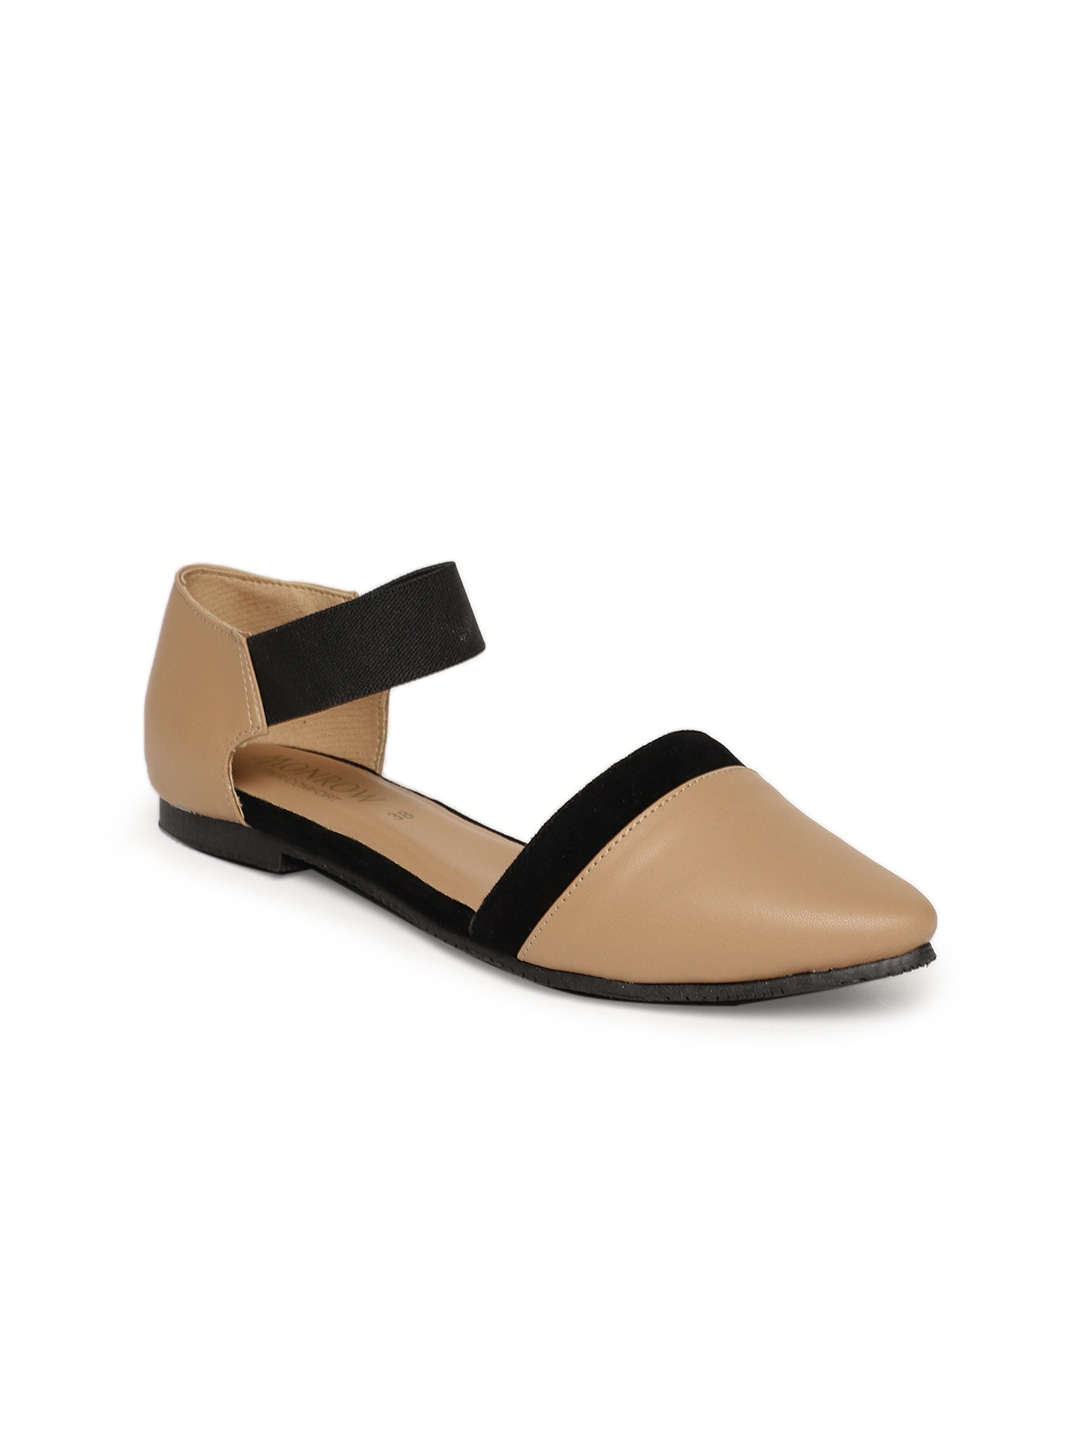 Brown Colourblocked Synthetic Ballerinas